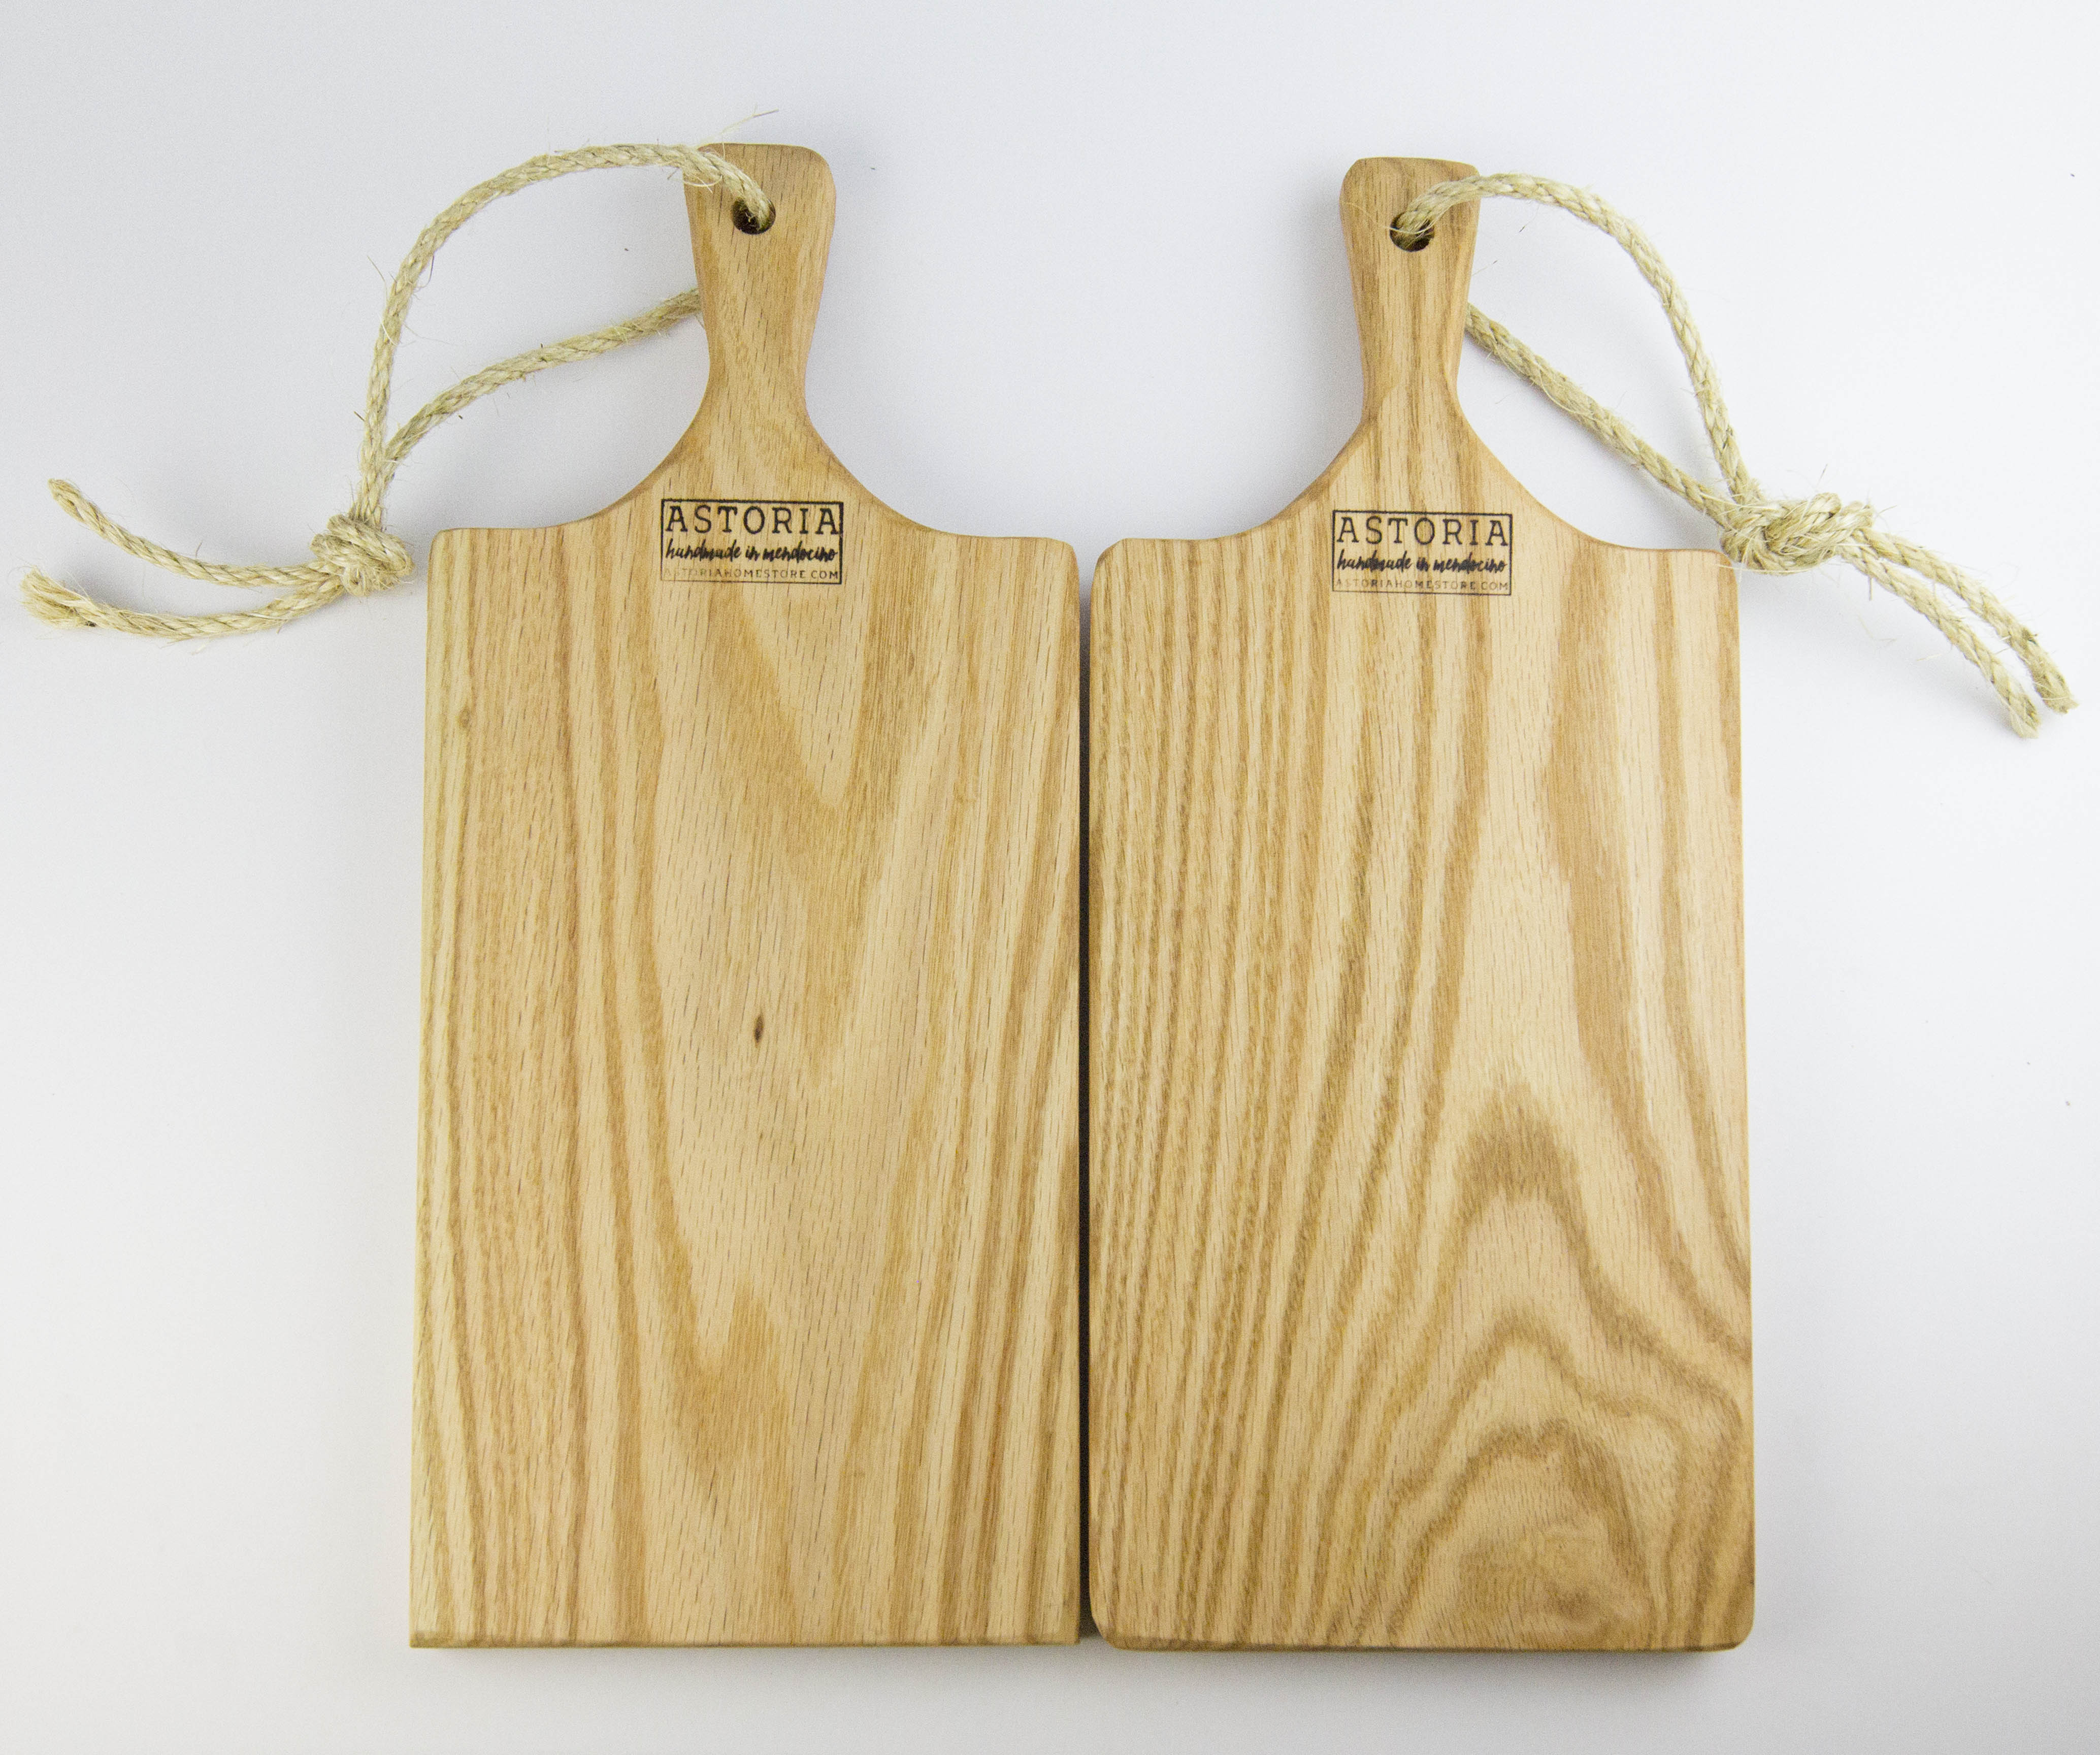 Astoria Home Decor And Gift Shop: Two Medium Solid Red Oak Charcuterie Serving Platters